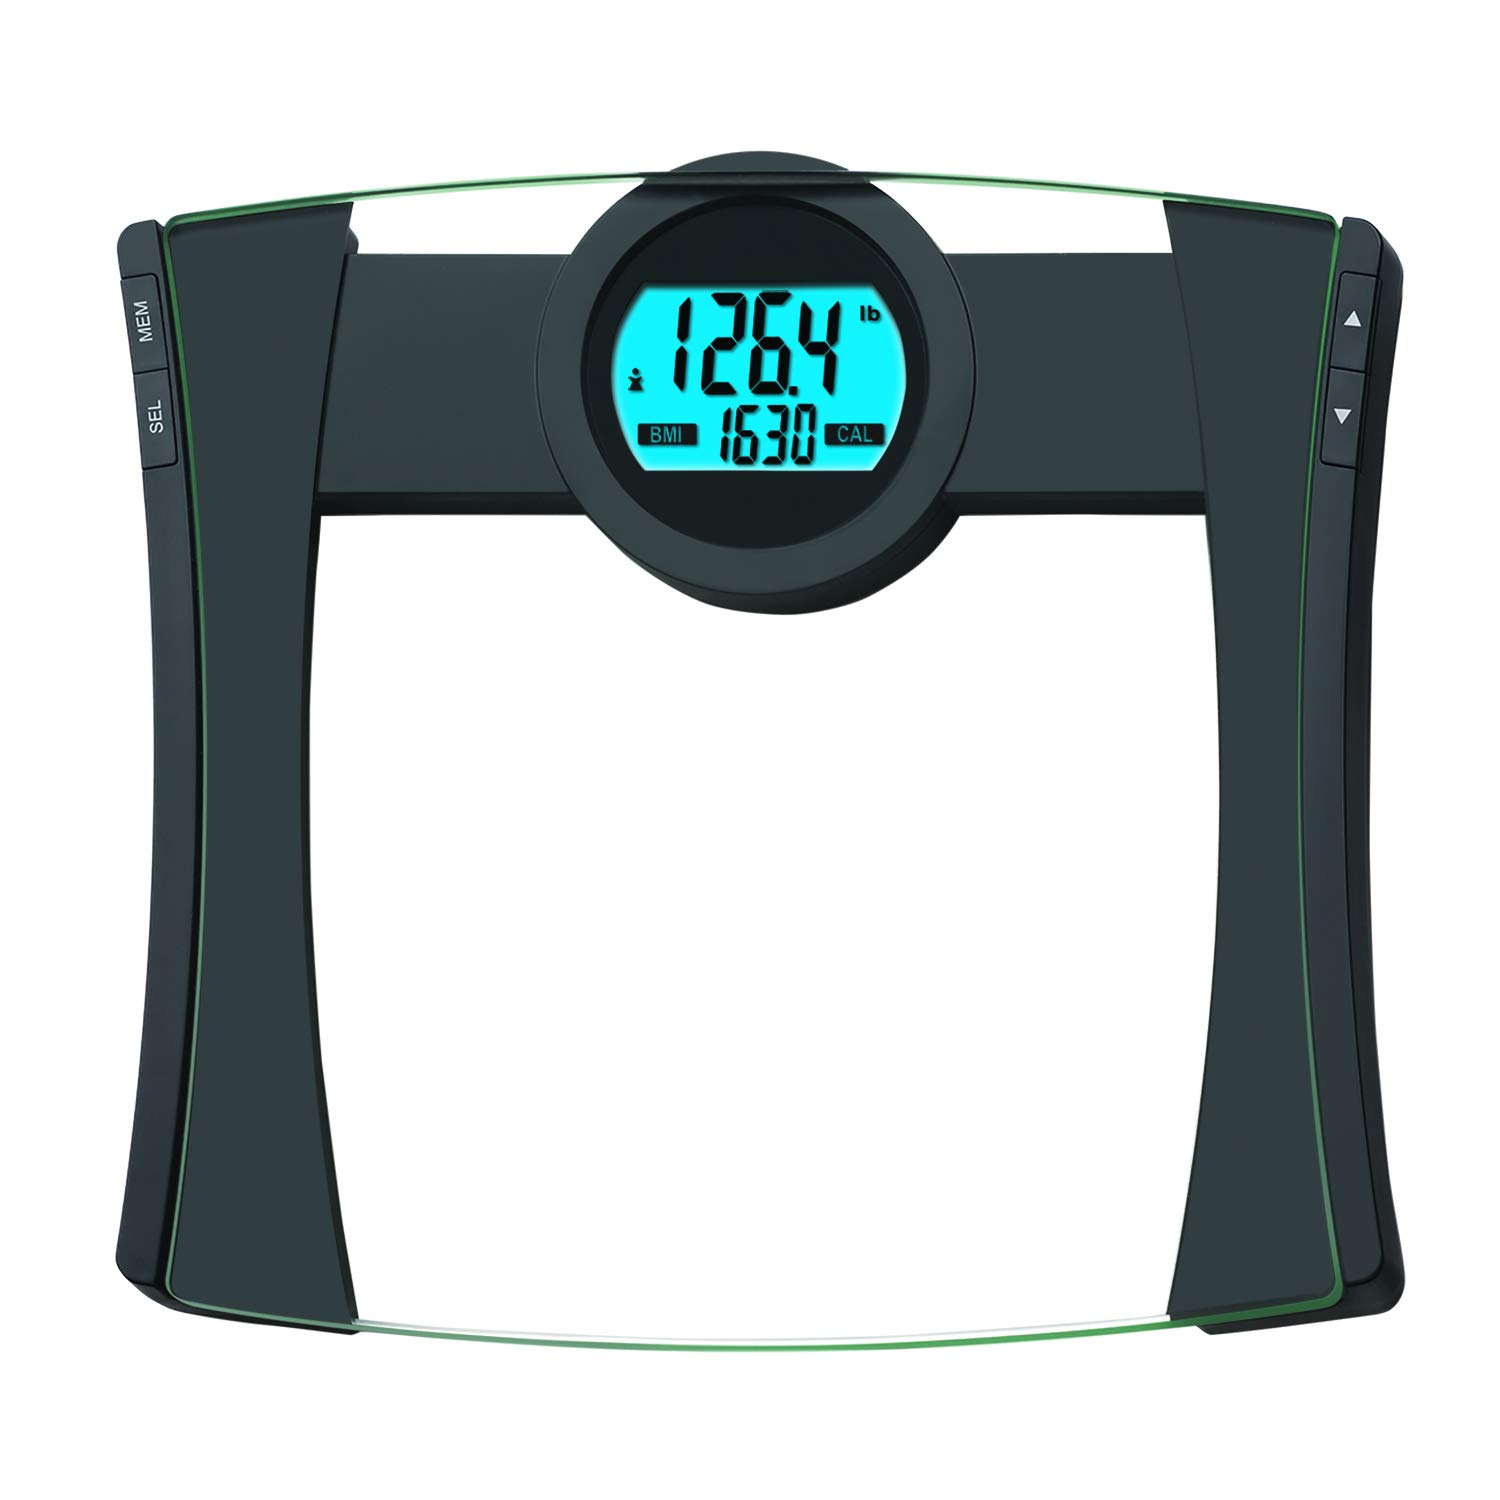 EatSmart Precision CalPal Digtal Bathroom Scale with BMI and Calorie Intake, 440 Pound Capacity by EatSmart